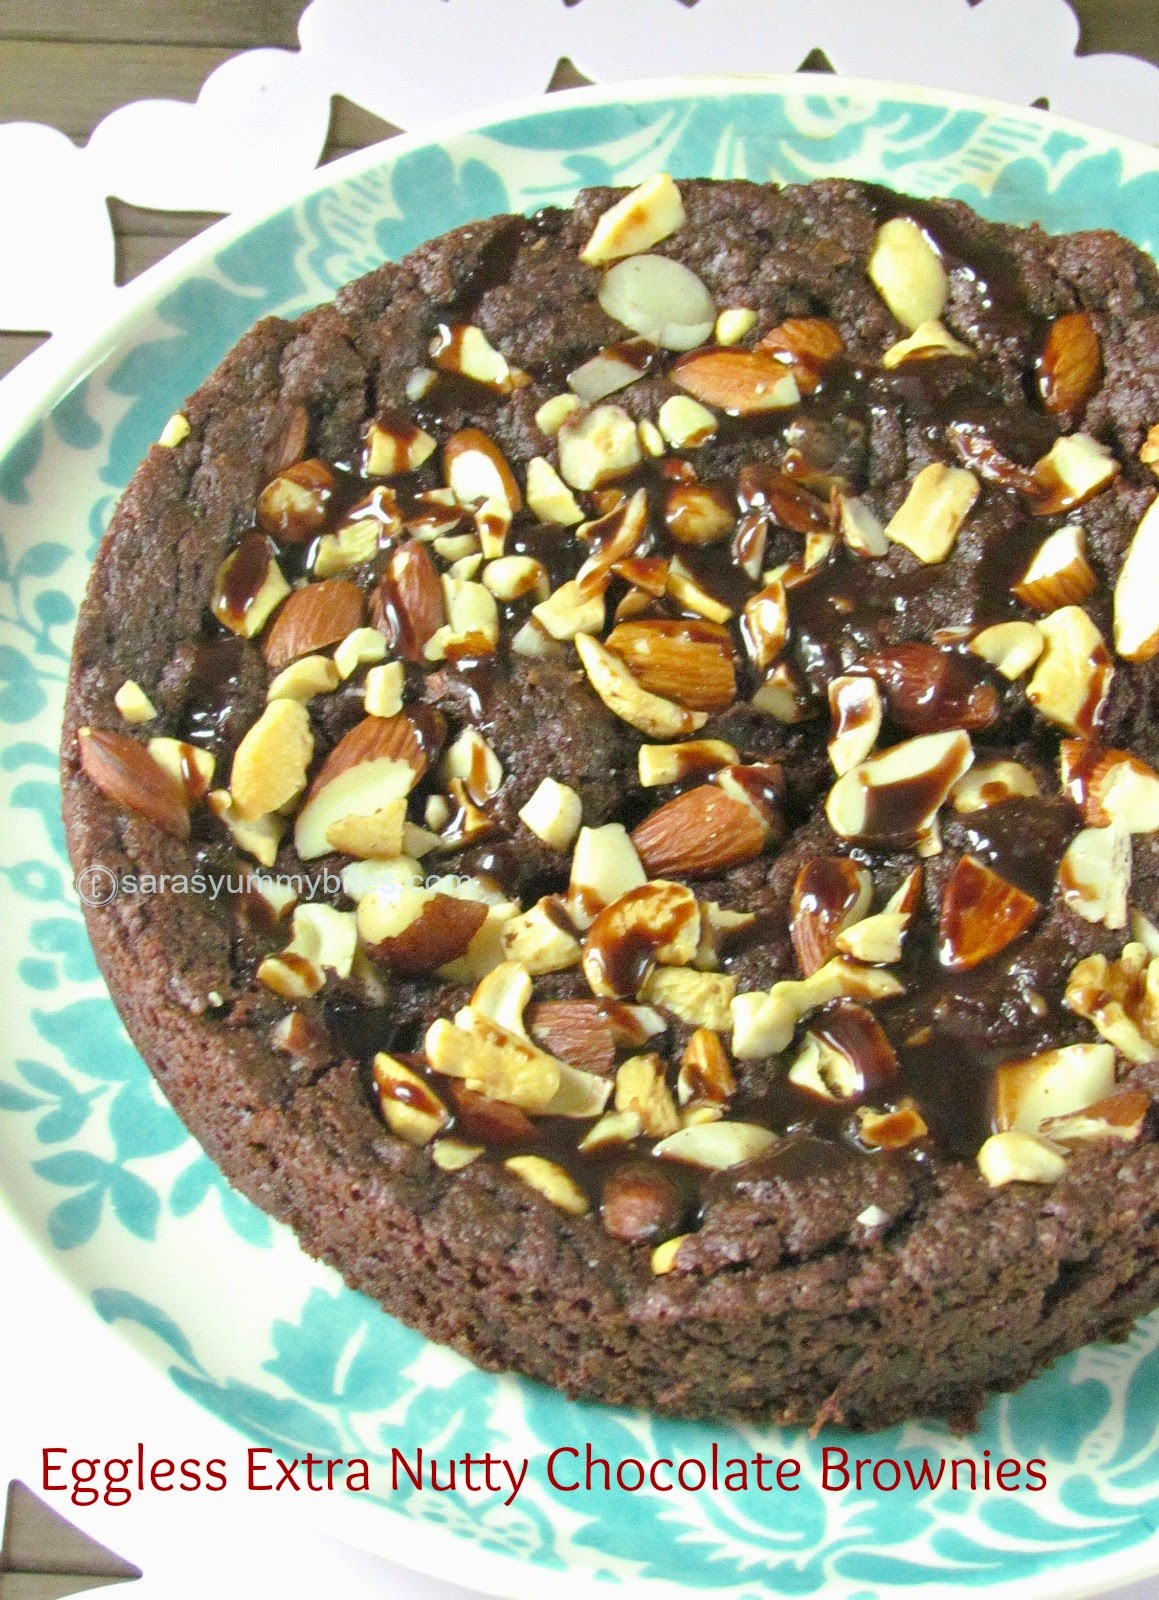 Eggless Extra Nutty Chocolate Brownies